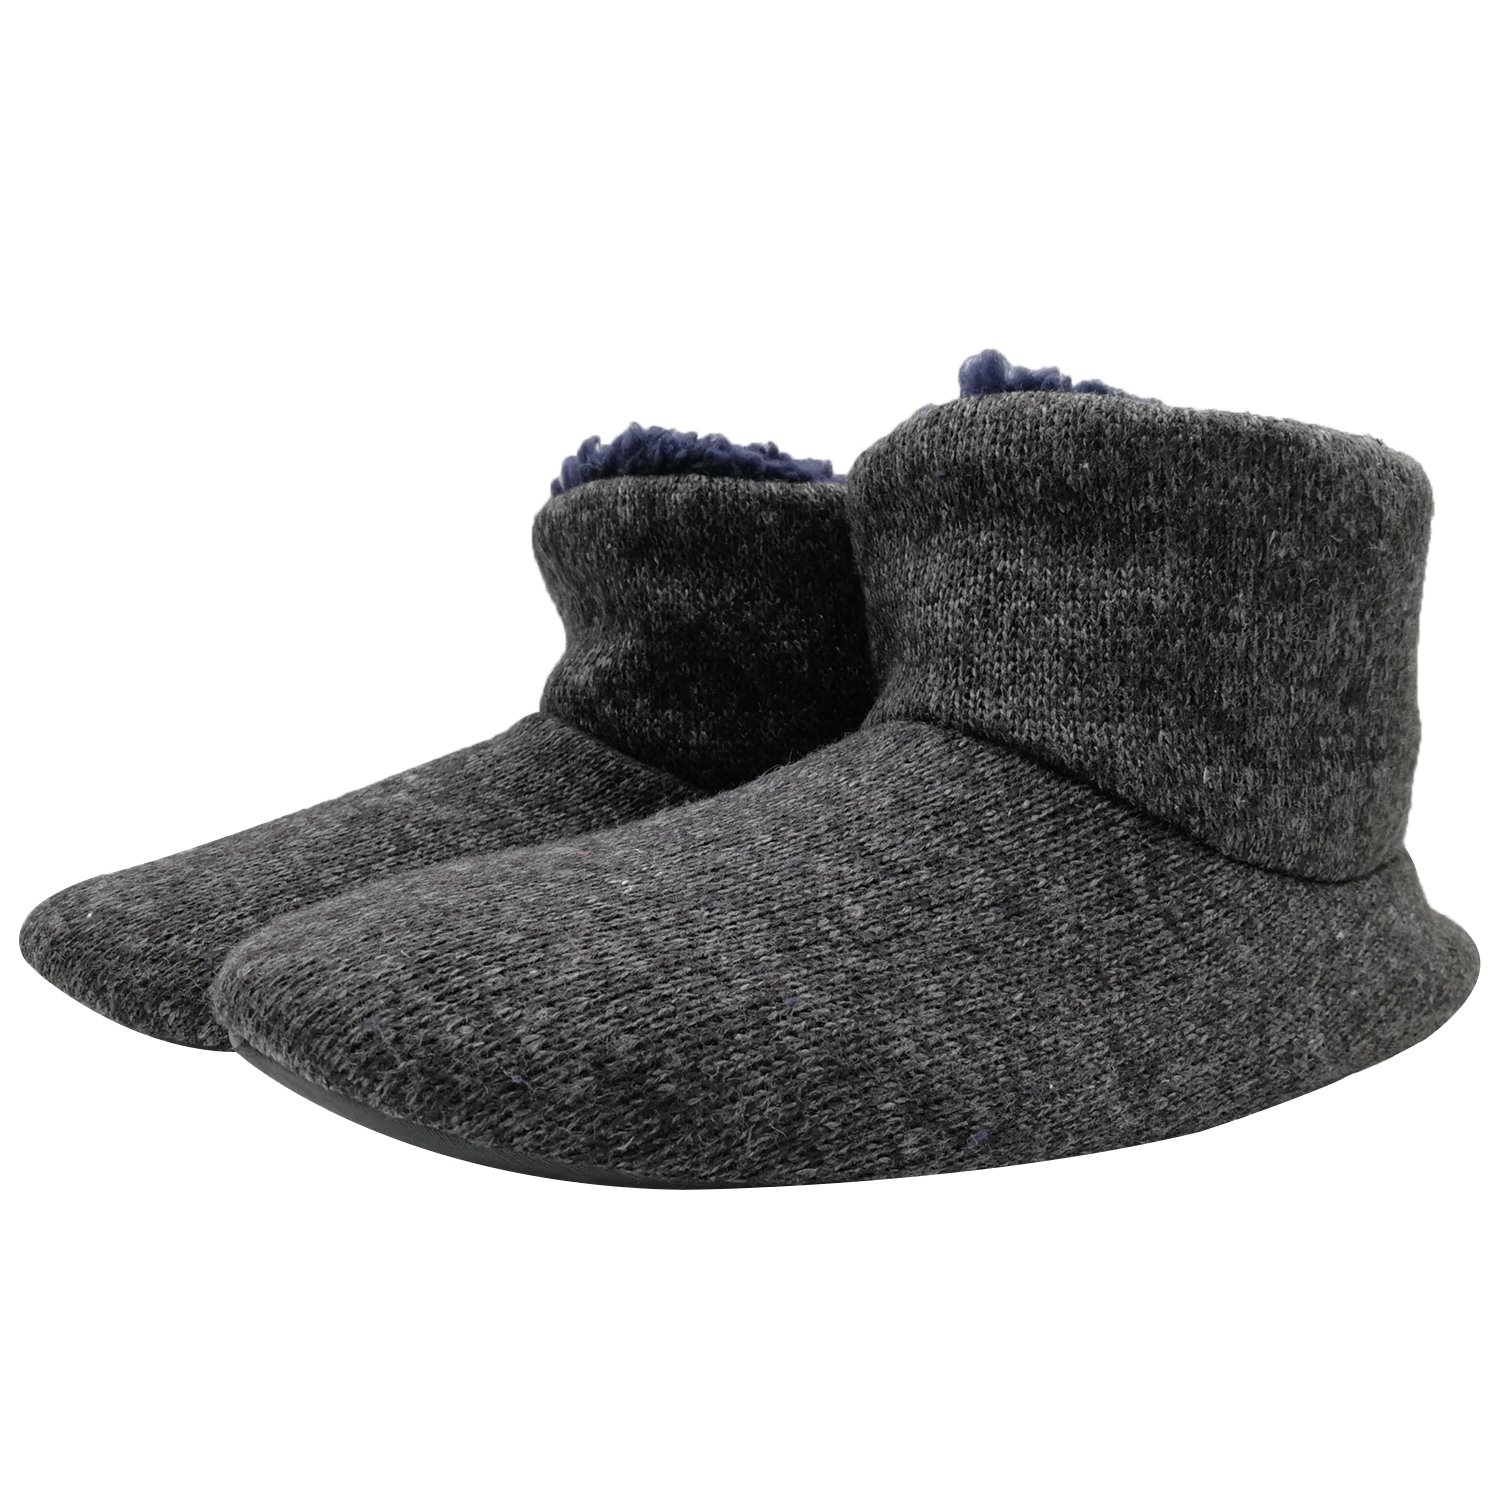 SunbowStar Men's Faux Fur Lined Knit Anti-Slip Indoor Slippers Boots House Slipper Bootie,Black Grey-11 D(M) US